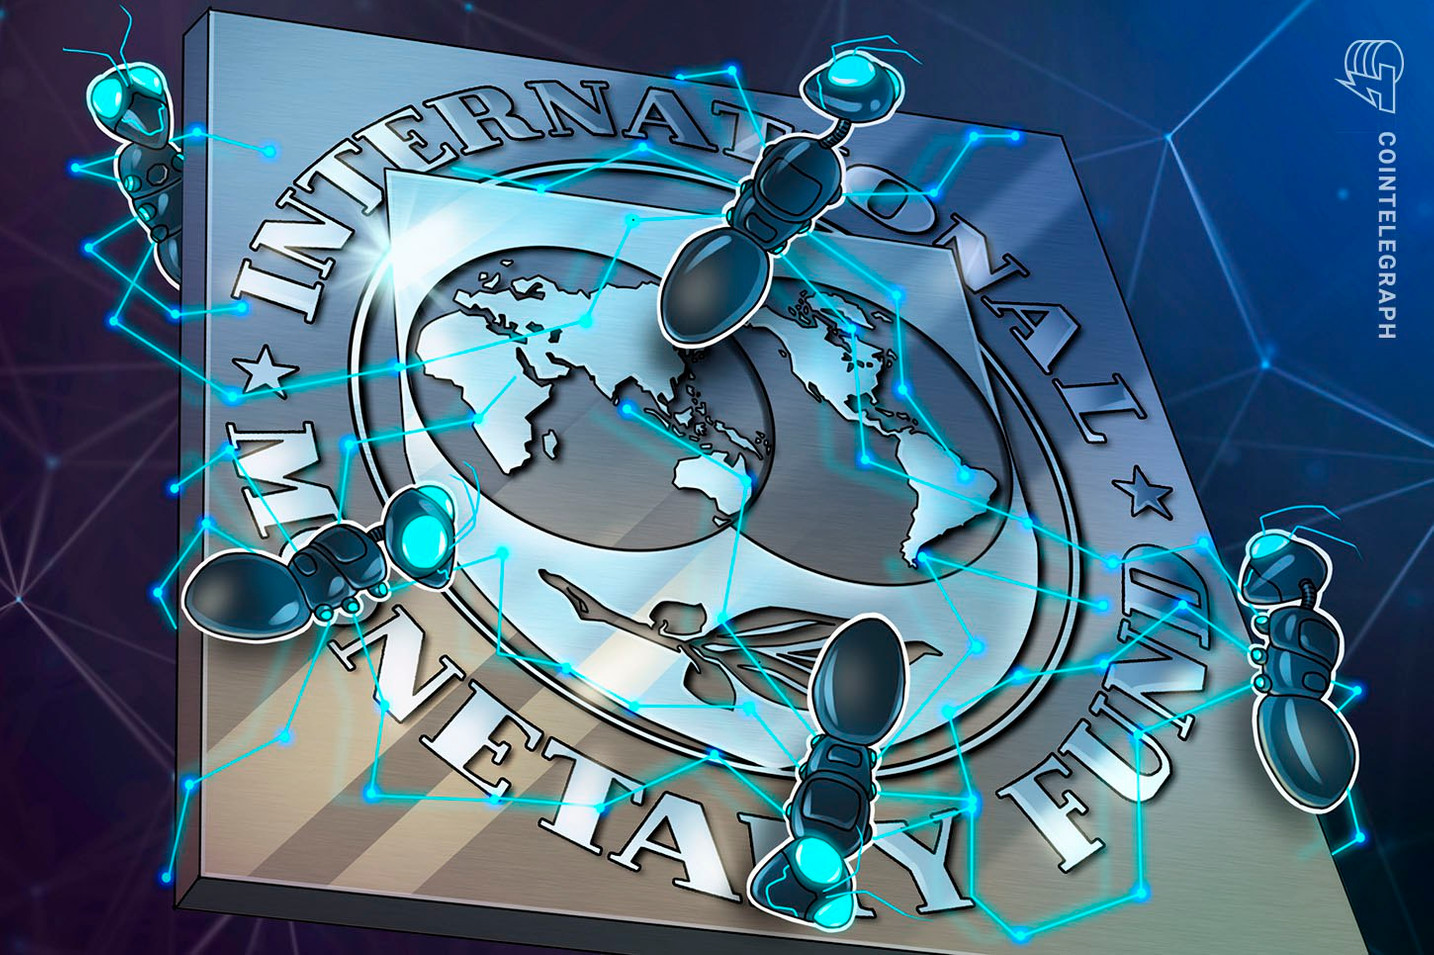 IMF: Network Effects Could Spark Blaze of Digital Money Adoption